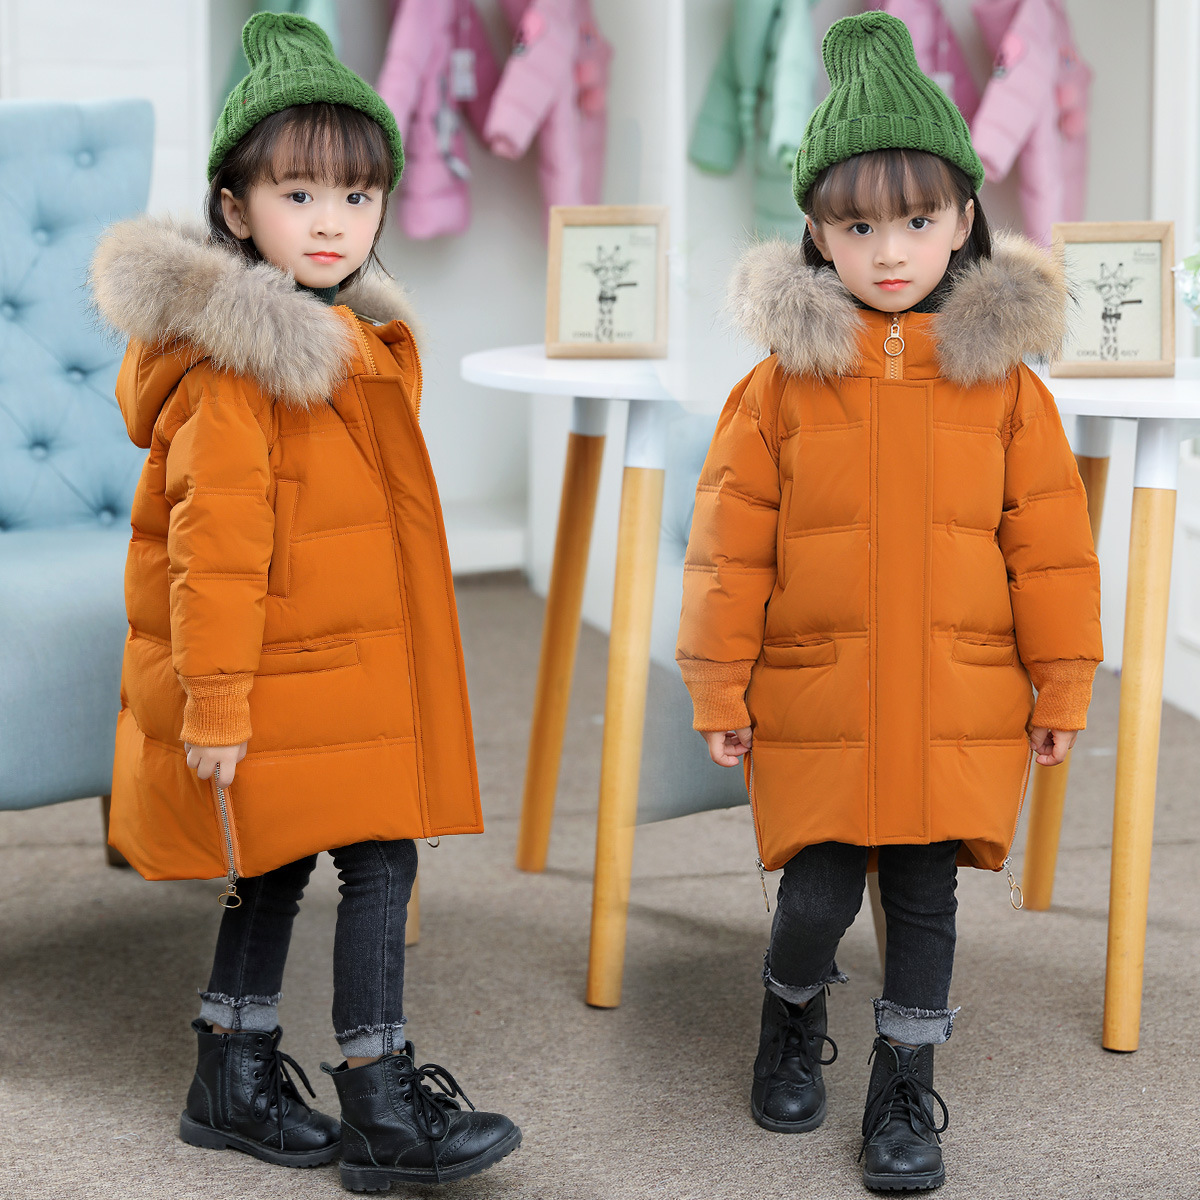 1-6 Years Kids Girls Winter Coat Thick Warm Girl Outwear Coat Down Jacket Natural Fur Hooded Children Snowsuit Long Parkas Z132 computer acc water cooling flow meter pom 2 ways g1 4 port female to female flow meter indicator for pc water cooling system